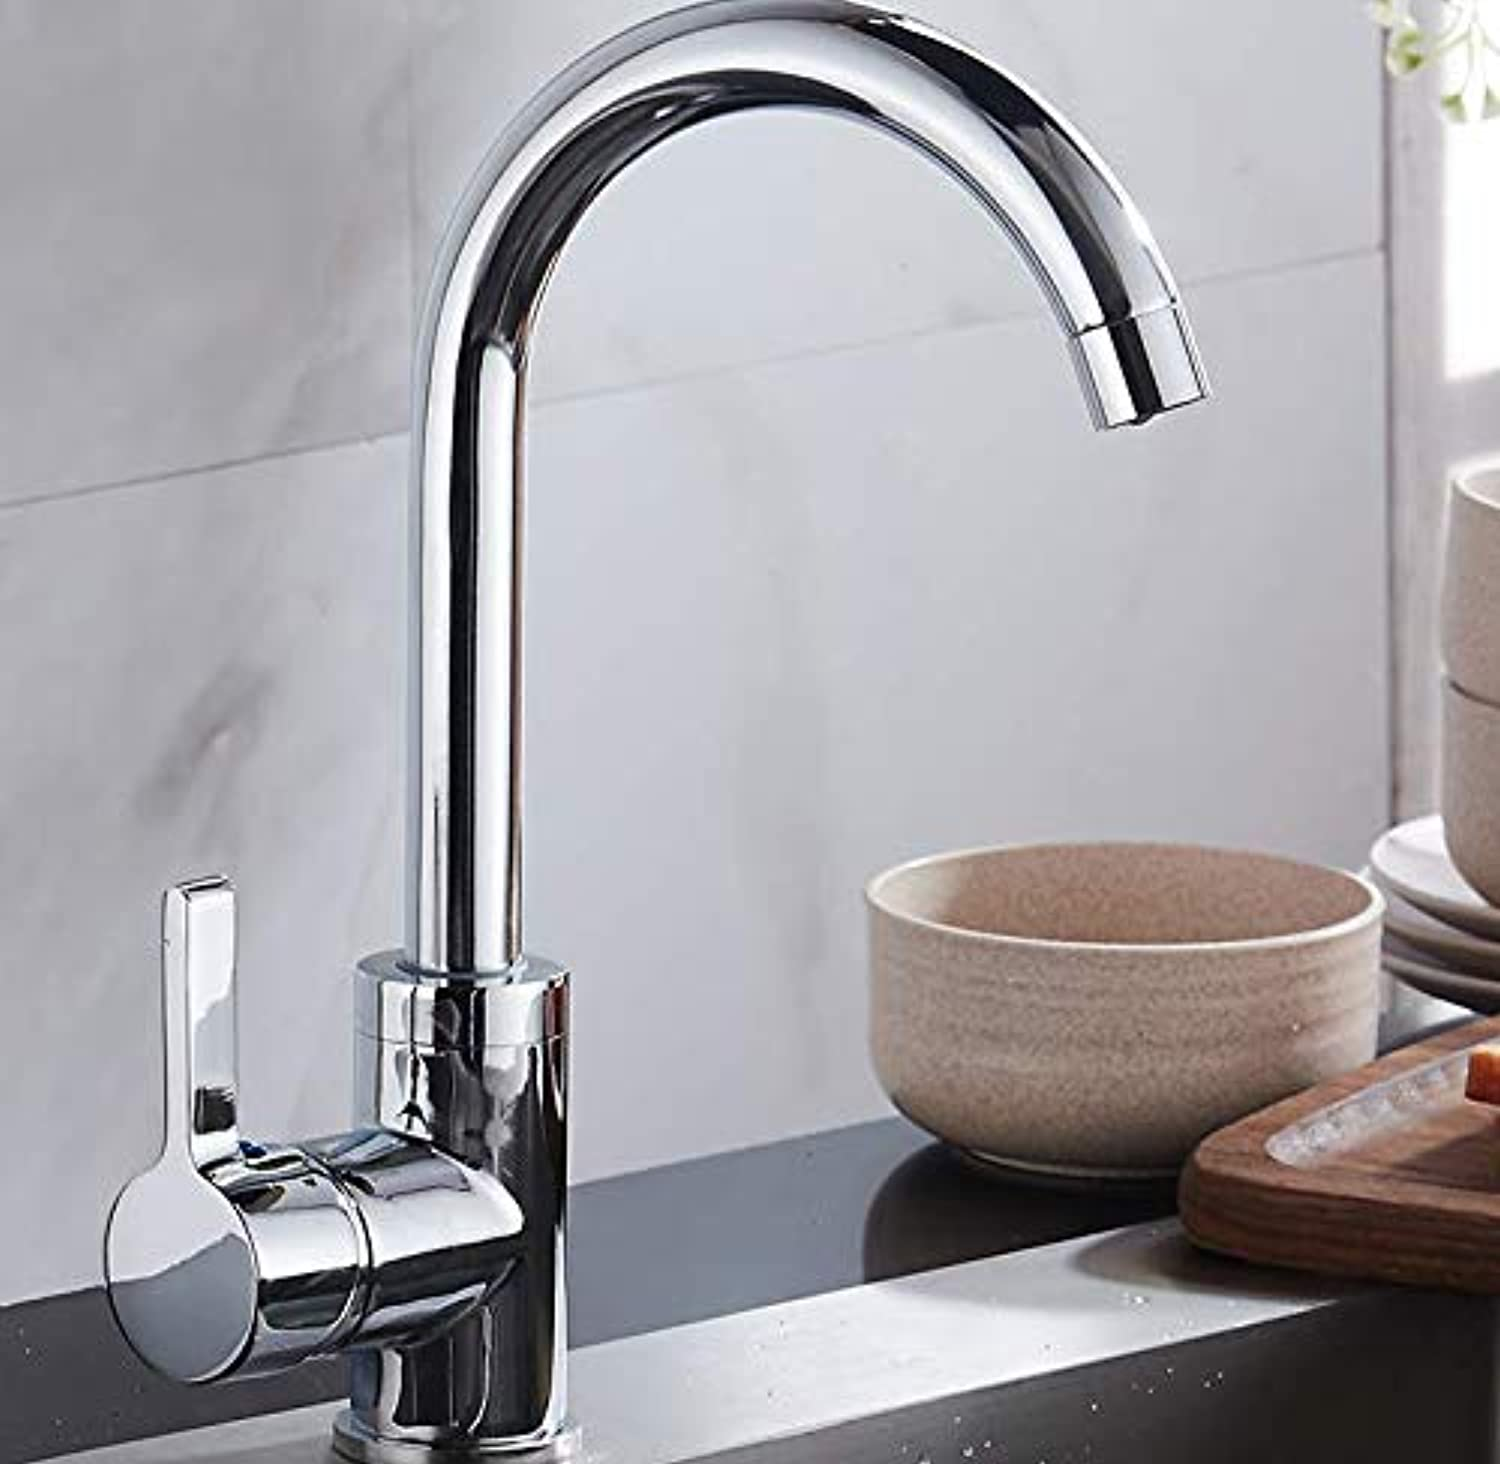 Kitchen Faucet Copper hot and Cold redating Faucet Household Stainless Steel Sink Universal Faucet Sink Faucet